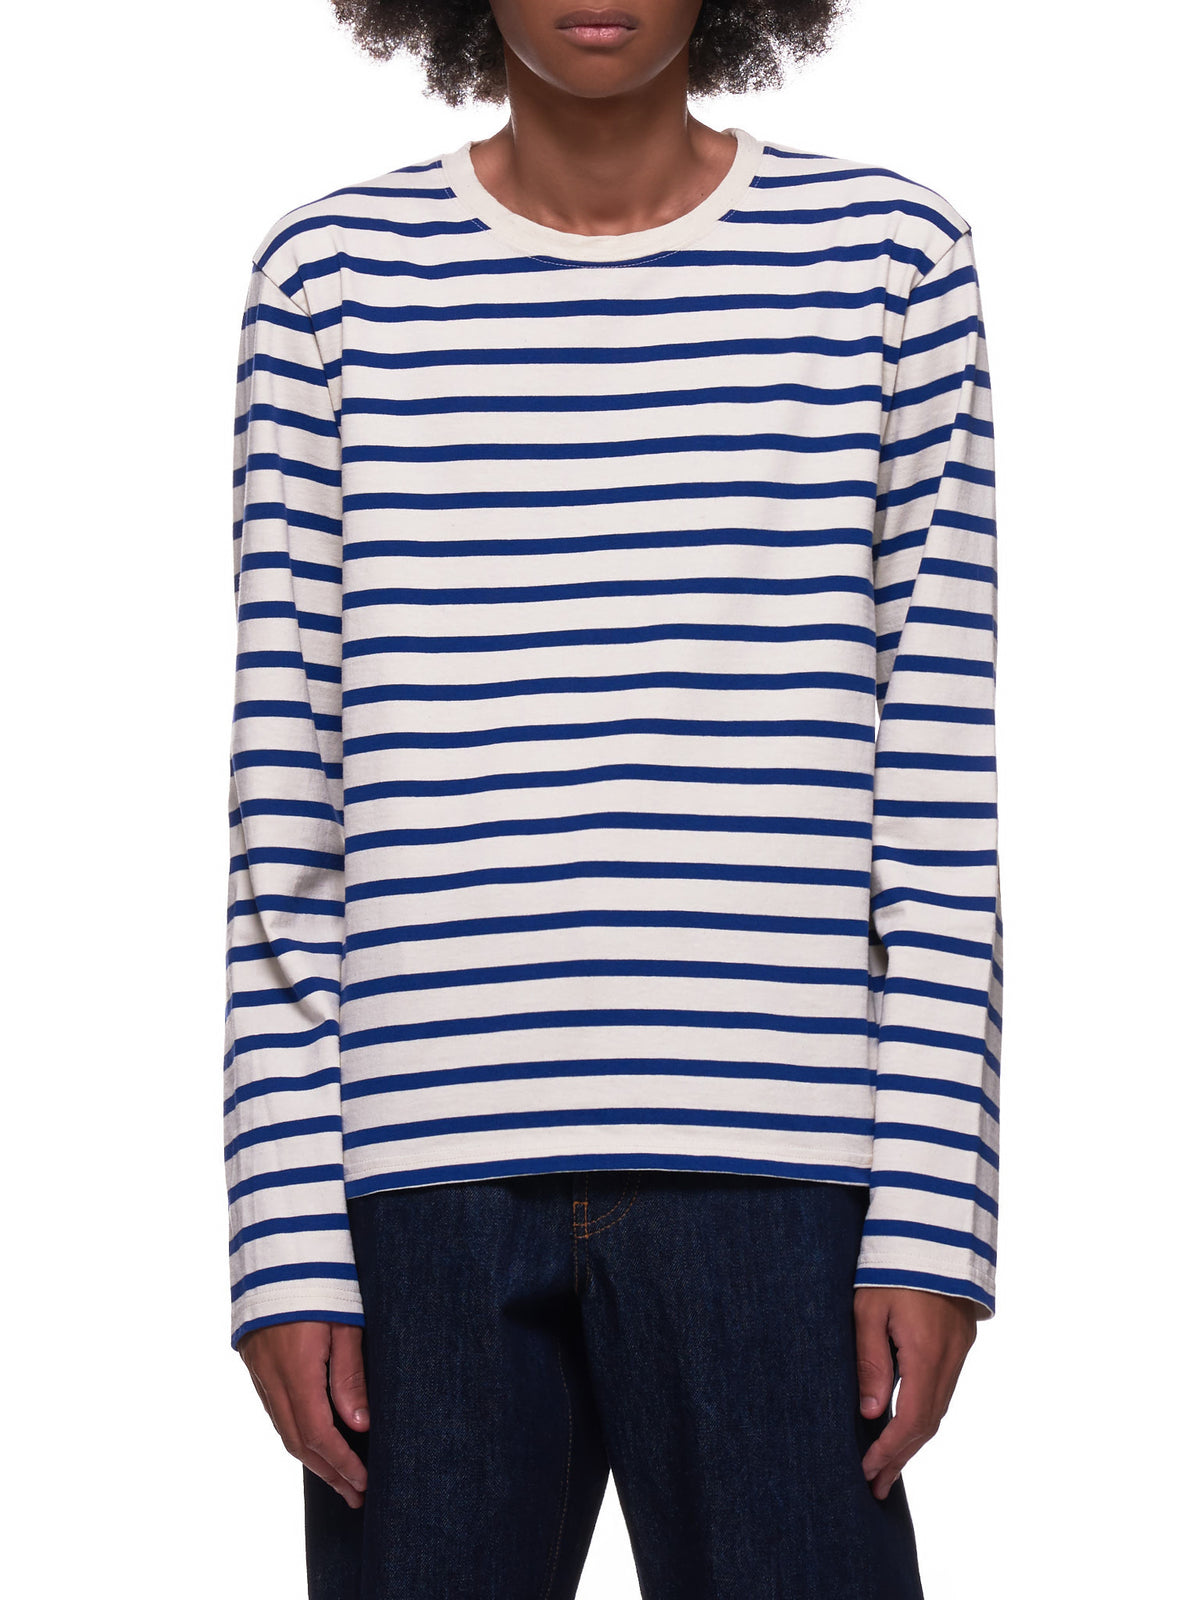 Striped Smiley Face Long Sleeve Shirt (EK-904-ECRU-BLUE)